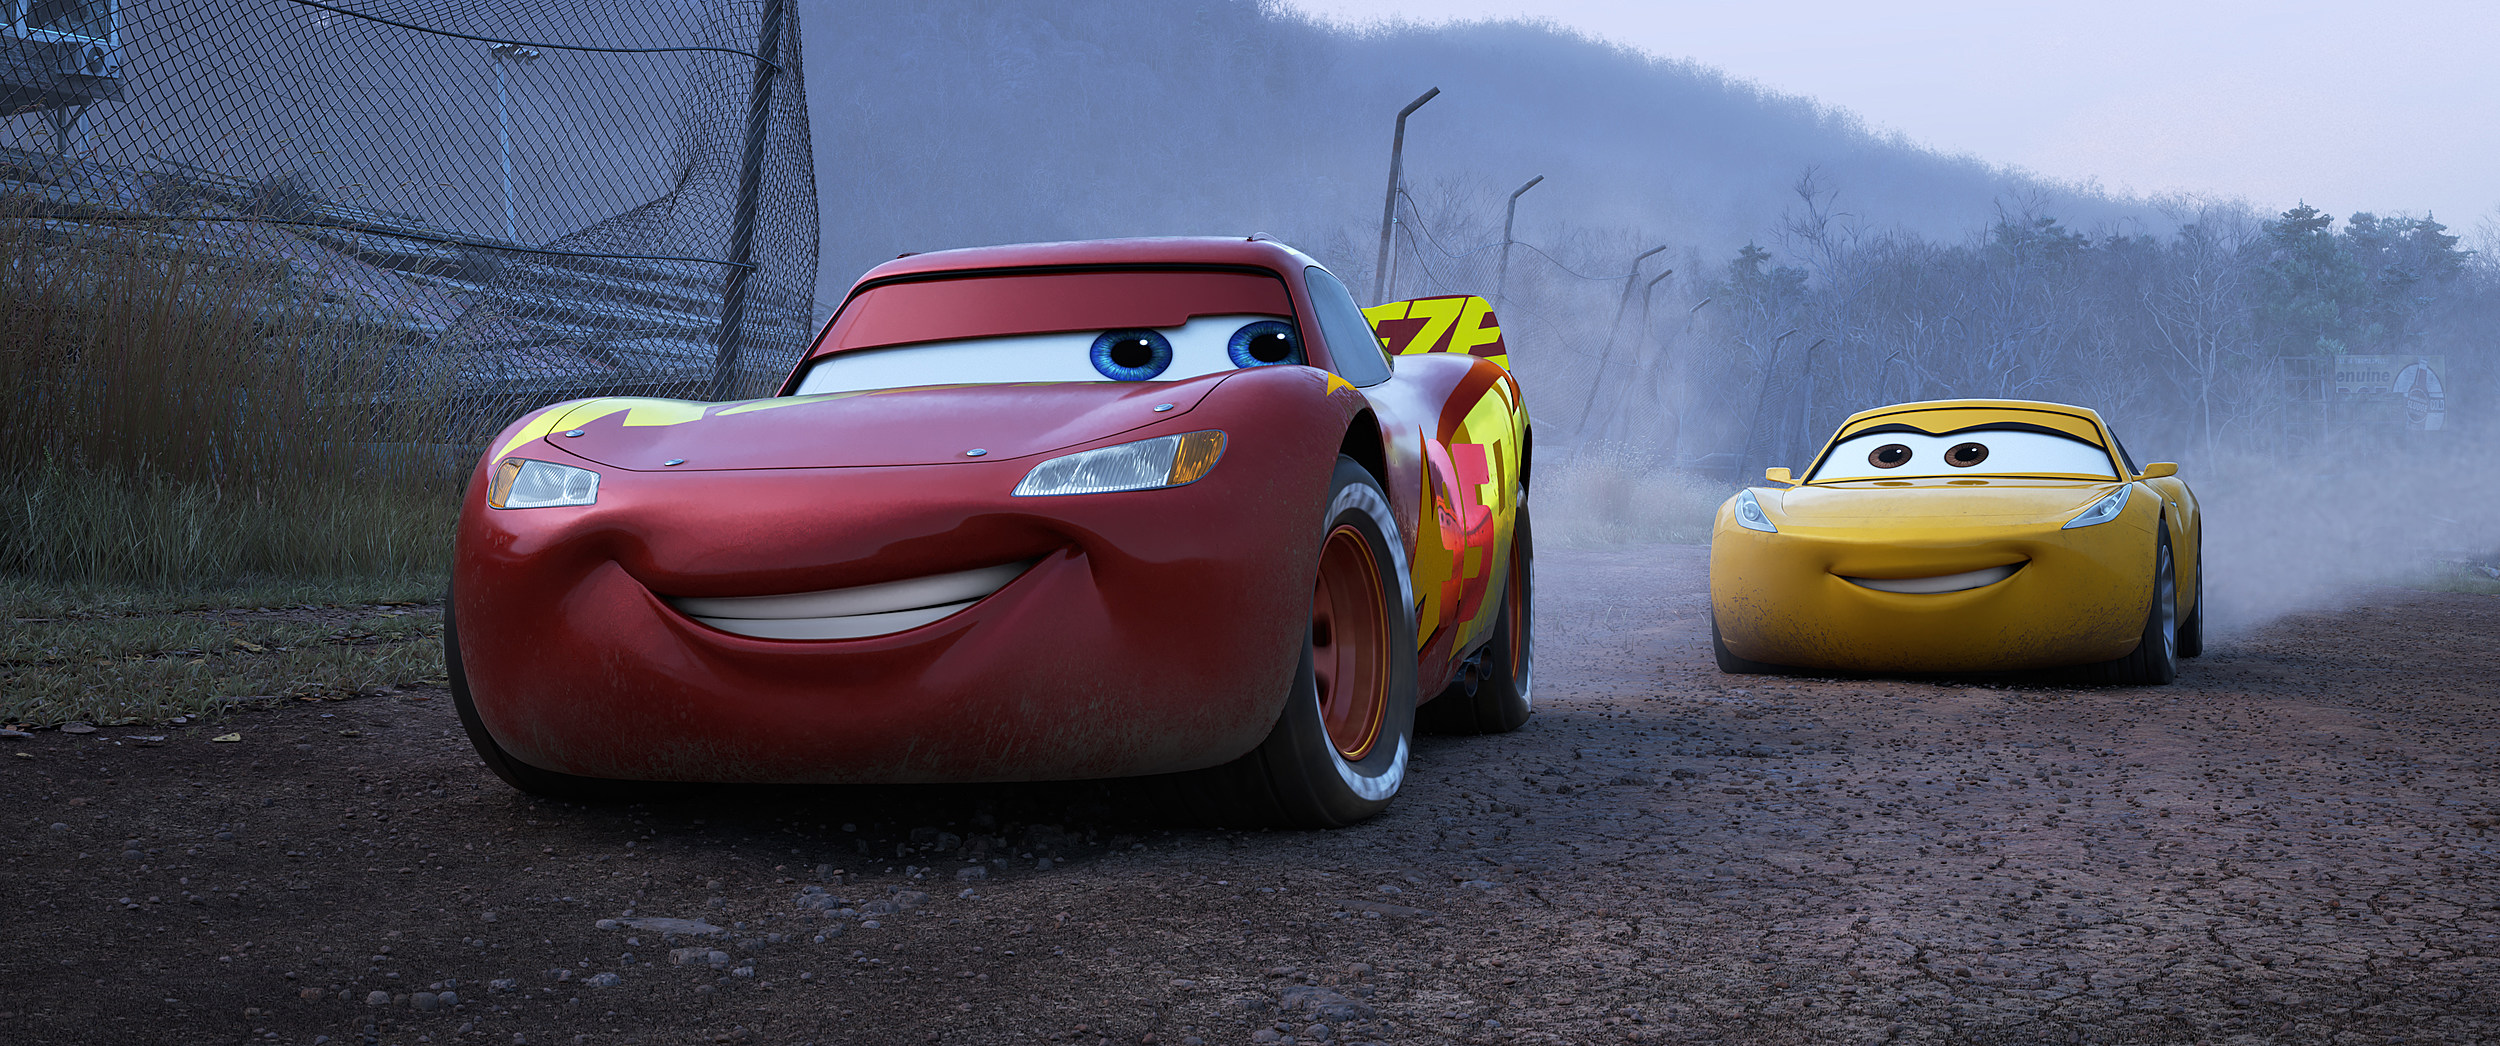 Can Pixar Convince Adults to Care About Cars